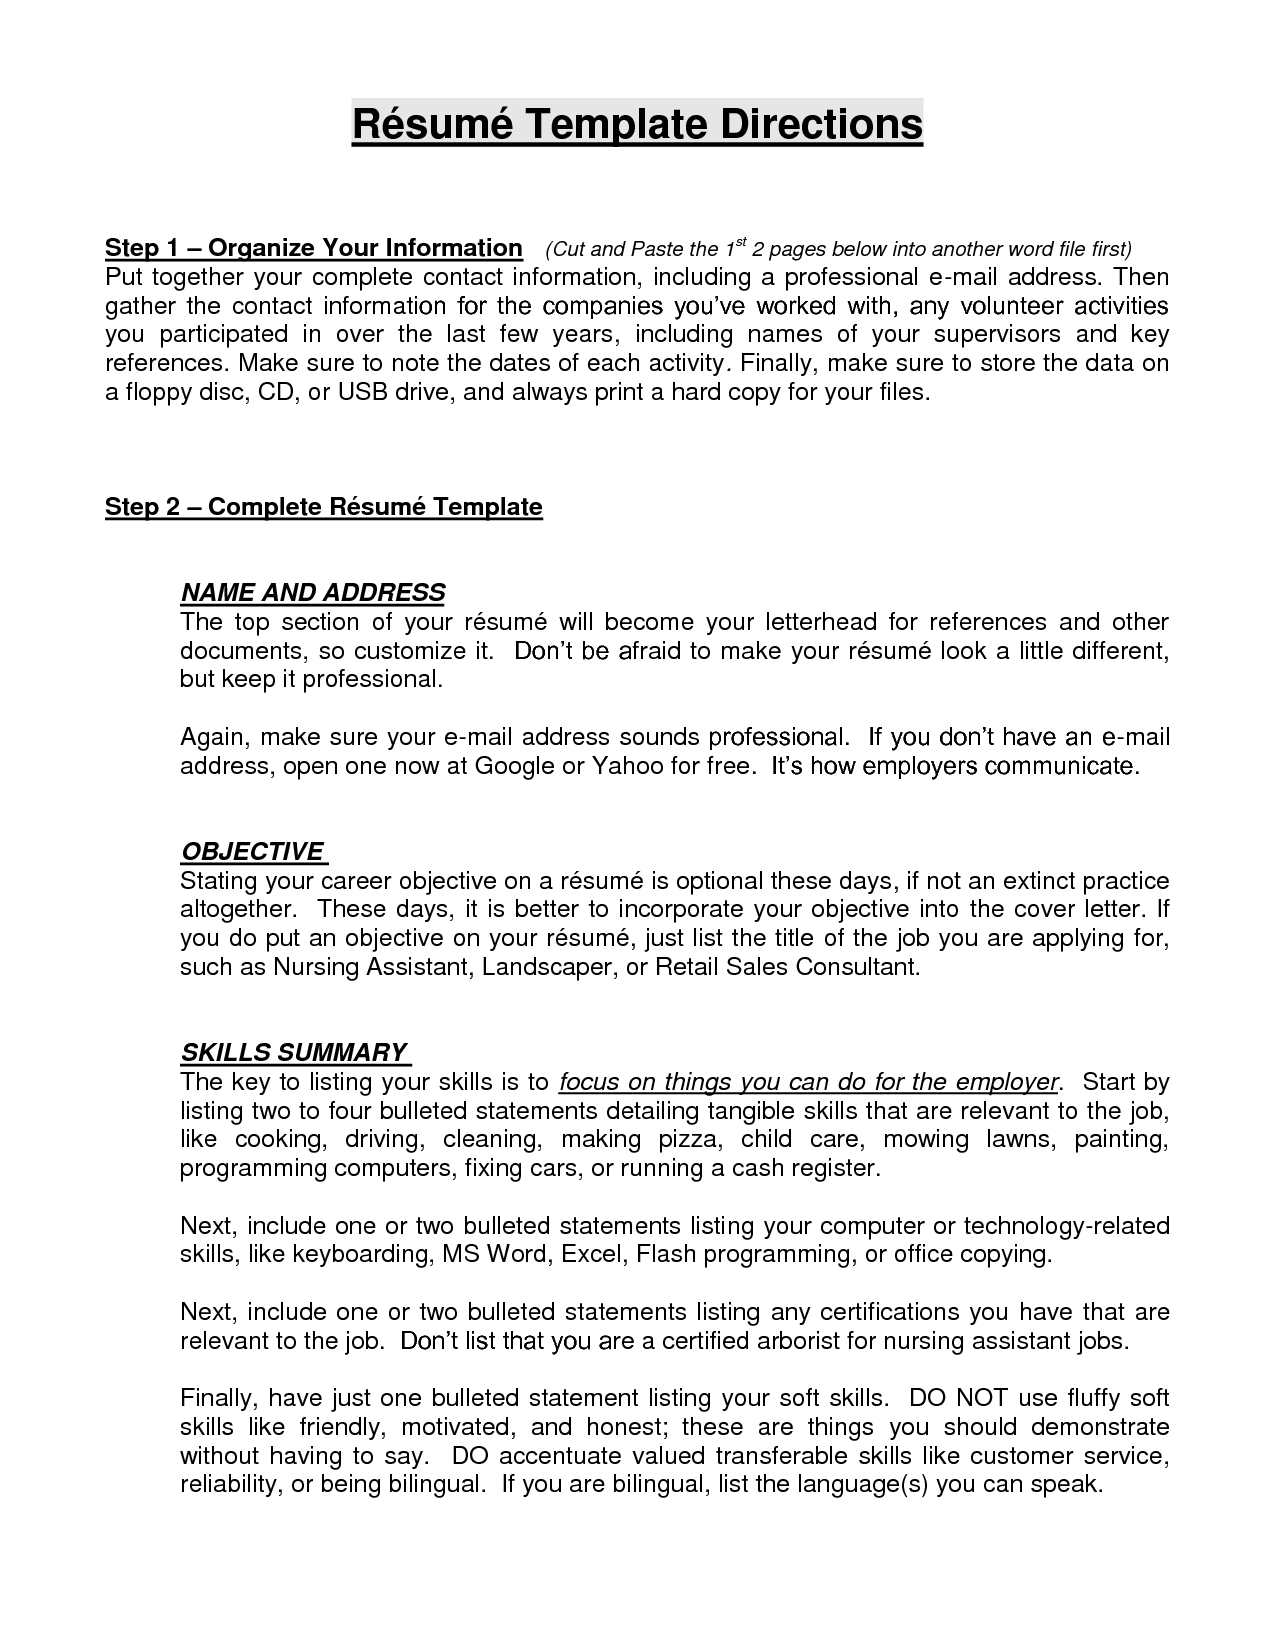 What To Write In Resume Objective 10 Sample Resume Objective Statements